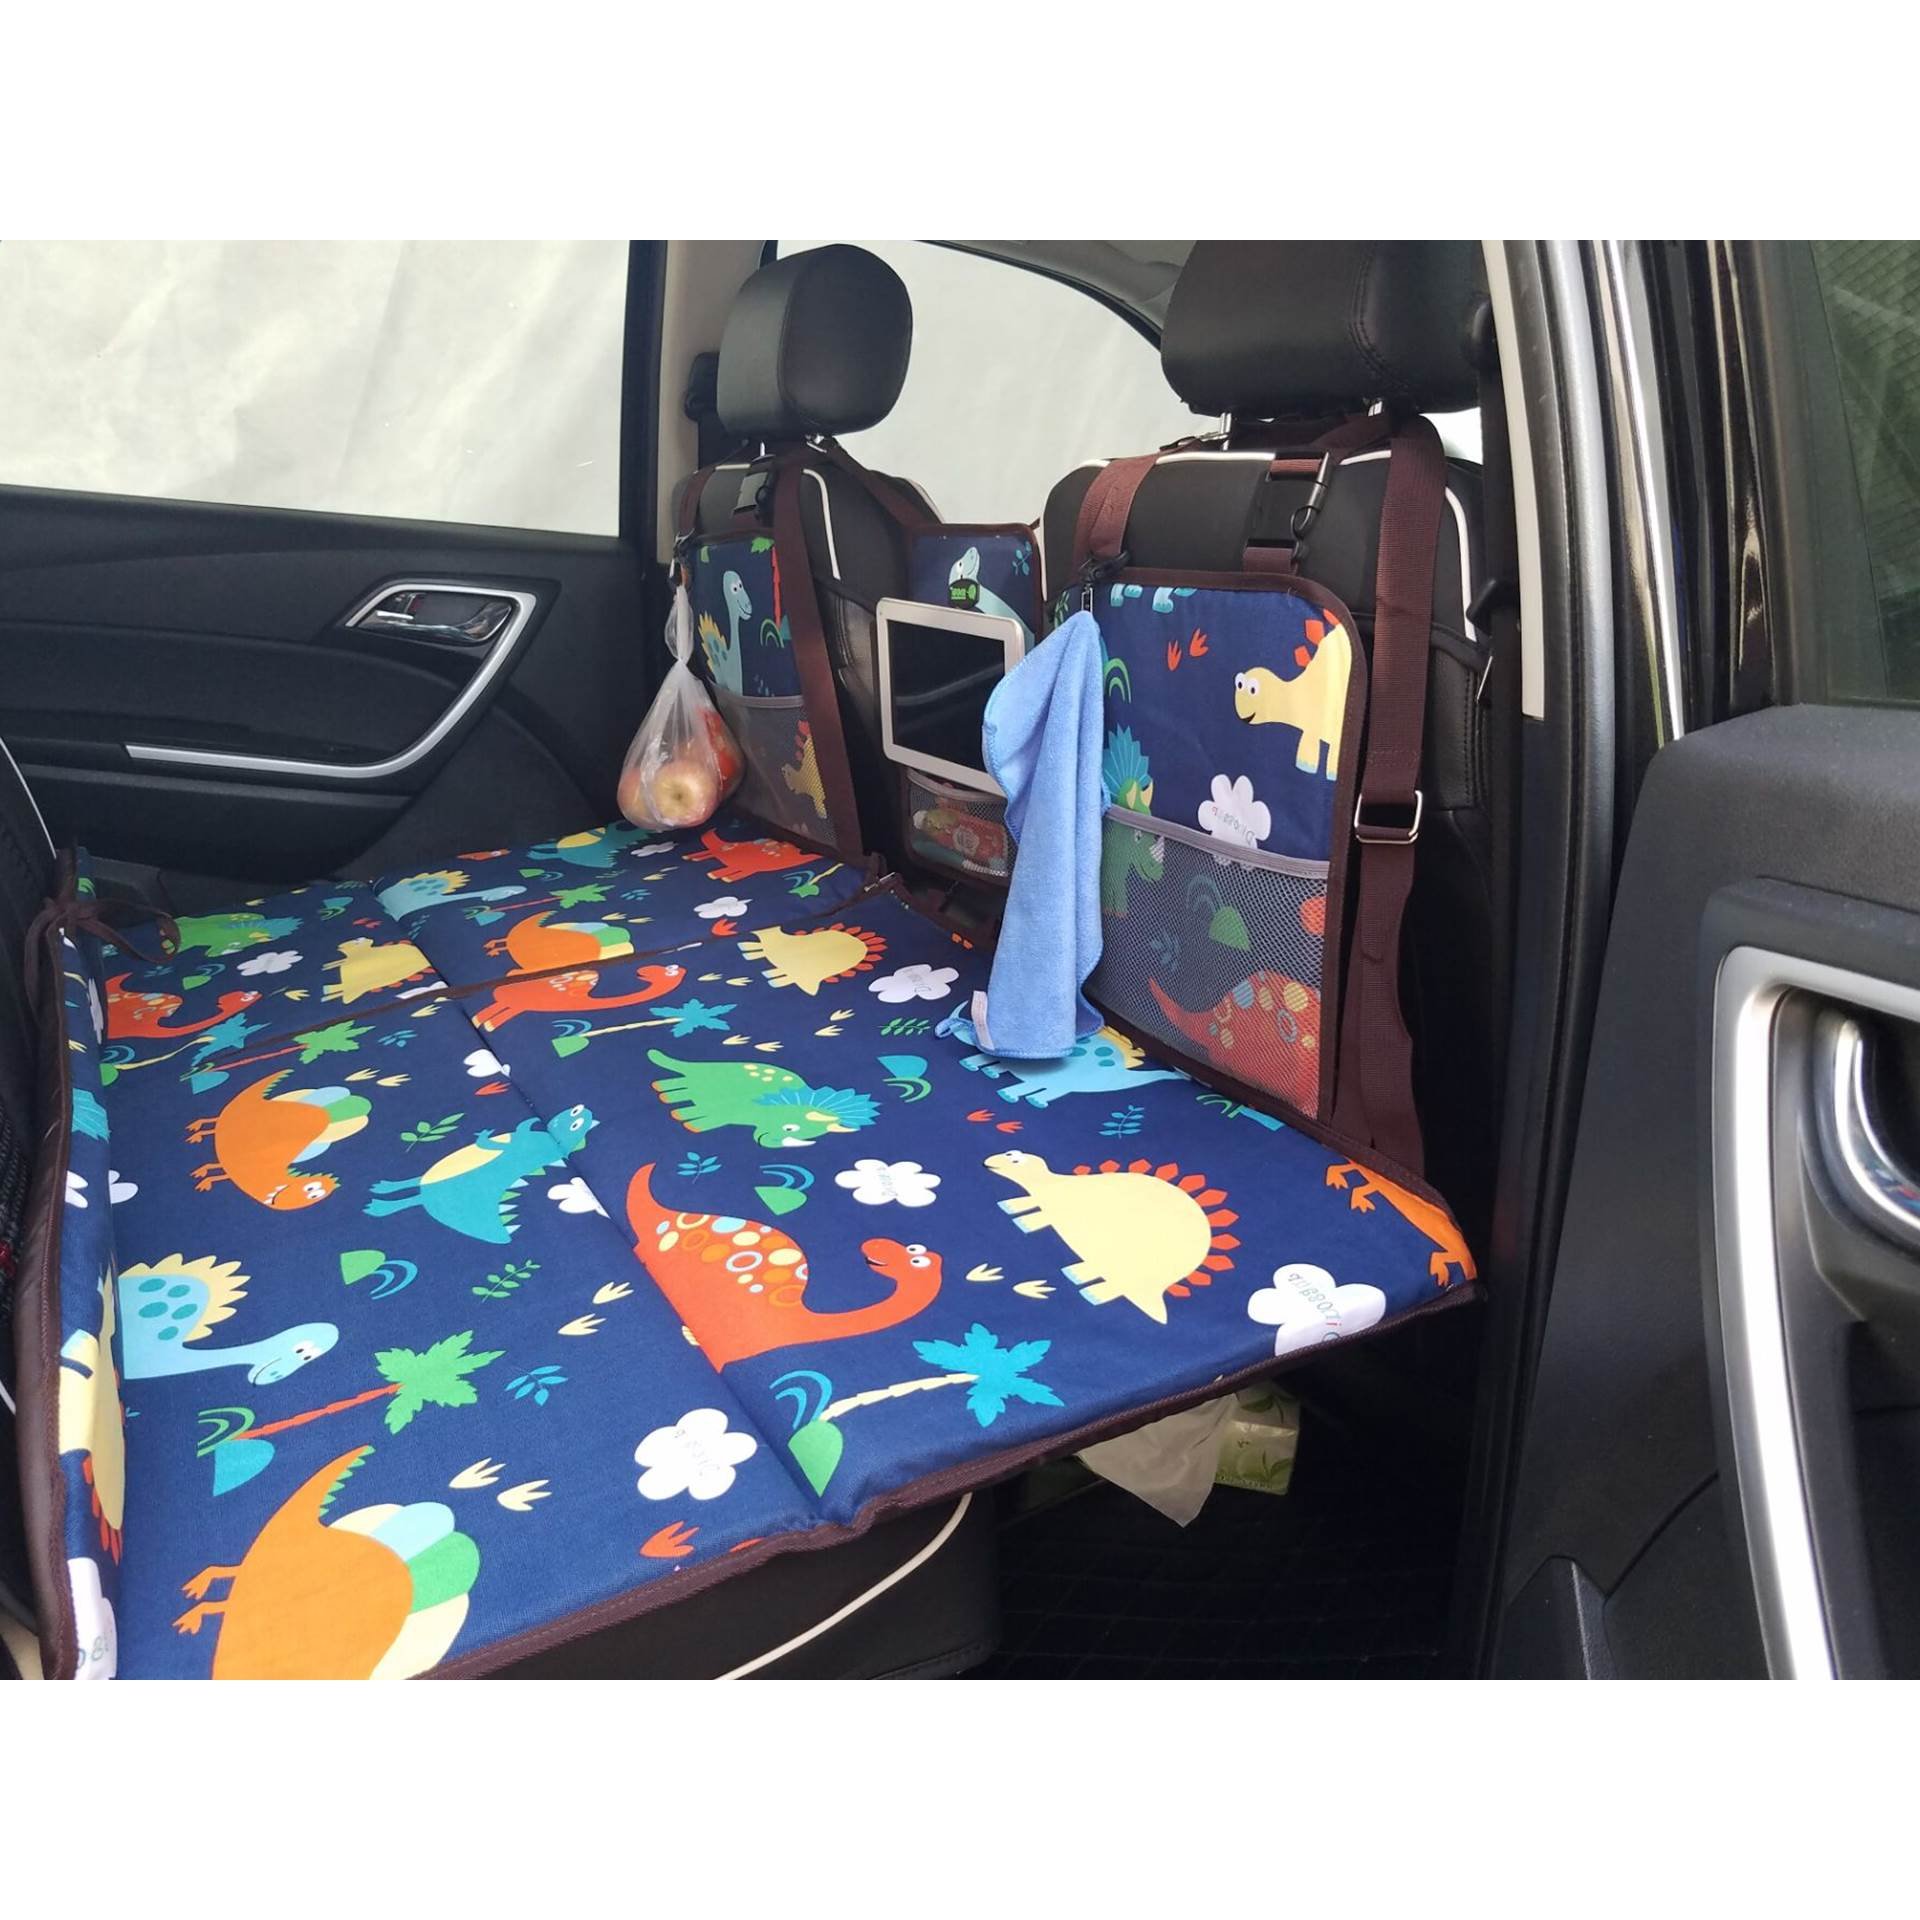 The new car seat travel bed bed mattress vehicle car auto supplies creative non inflatable universal adult